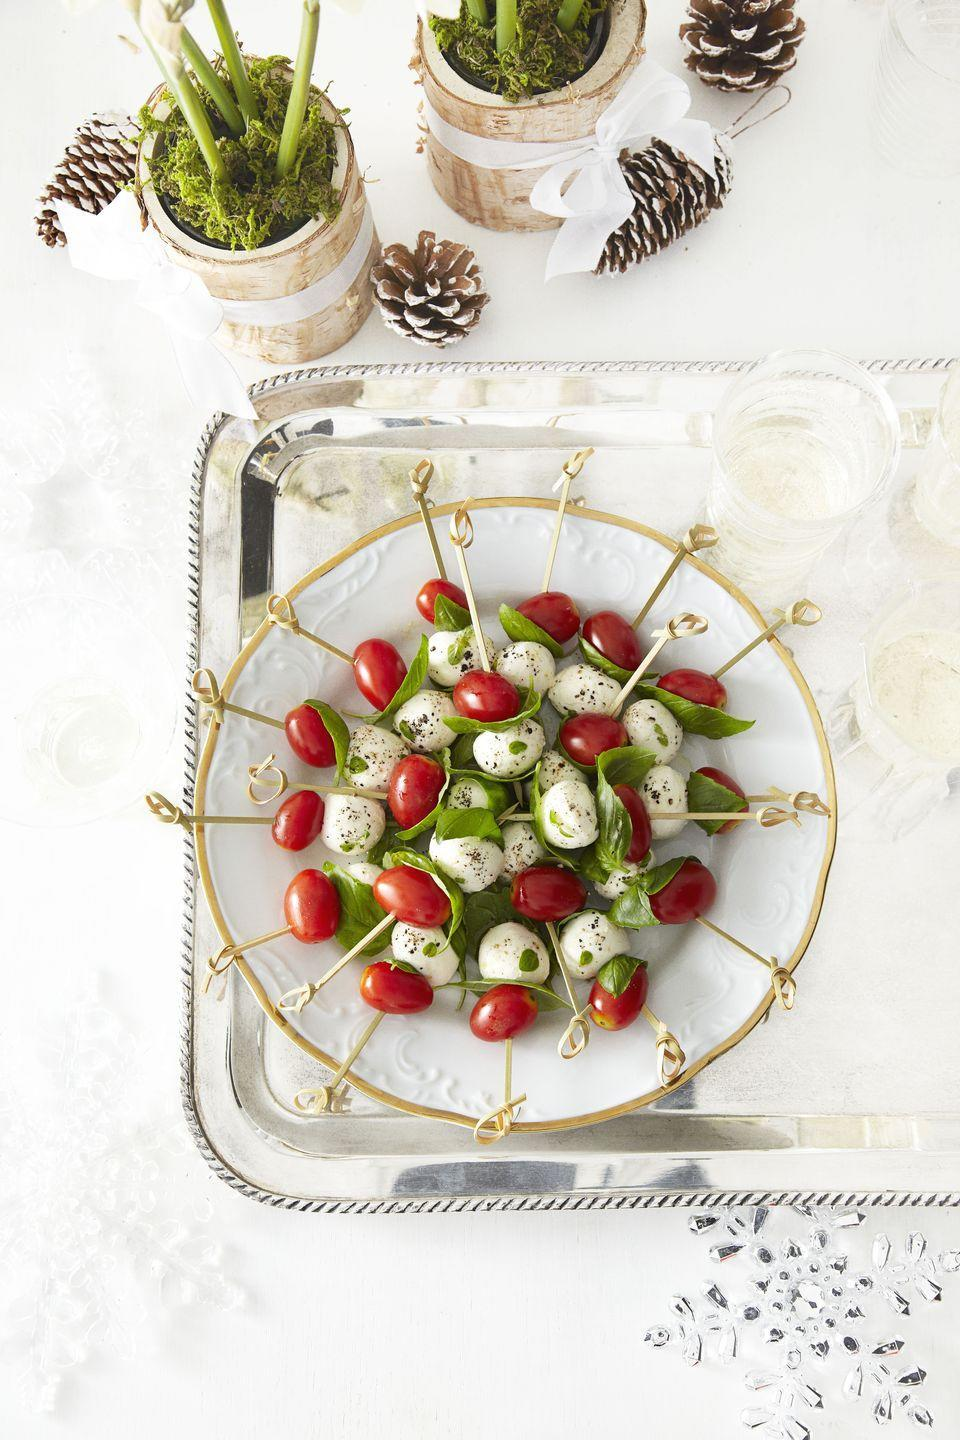 """<p>If you need an excuse to serve the classic Caprese combo, just think how it will match your Christmas color scheme.</p><p><em><a href=""""https://www.goodhousekeeping.com/food-recipes/a13678/tomato-mozzarella-bites-recipe-ghk1212/"""" rel=""""nofollow noopener"""" target=""""_blank"""" data-ylk=""""slk:Get the recipe for Tomato and Mozzarella Bites »"""" class=""""link rapid-noclick-resp"""">Get the recipe for Tomato and Mozzarella Bites »</a></em></p>"""